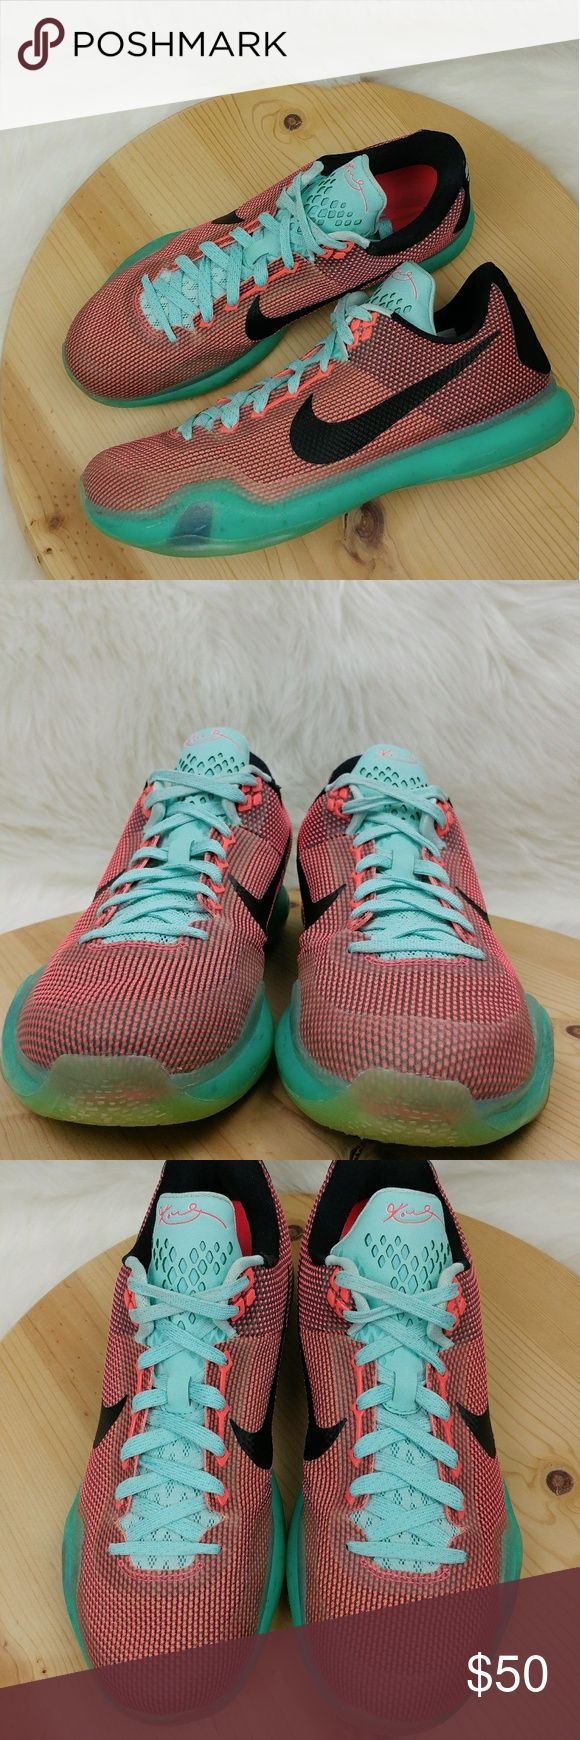 """Nike Kobe 10 """"Easter"""" mens athletic shoes This """"Easter"""" edition of theNike Kobe 10is dressed in a mixture of Hot Lava, Sunset Glow, and Black color scheme. The shoe is inspired from the shade of robin's egg and maintains the sophisticated simplicity of Kobe Bryant's 10th signature shoe. Washed and sanitized Have minor scuffs/stains/ two little holes pictured Still look great Nike Shoes Athletic Shoes"""